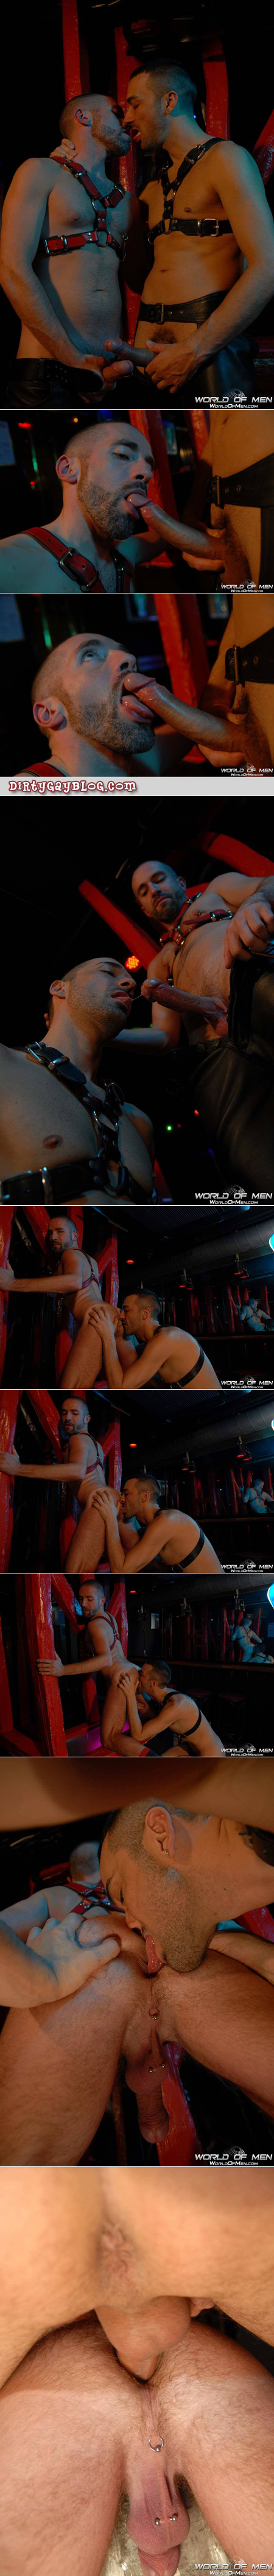 Leather men having sex in a gay bar while a male bartender watches from the shadows.